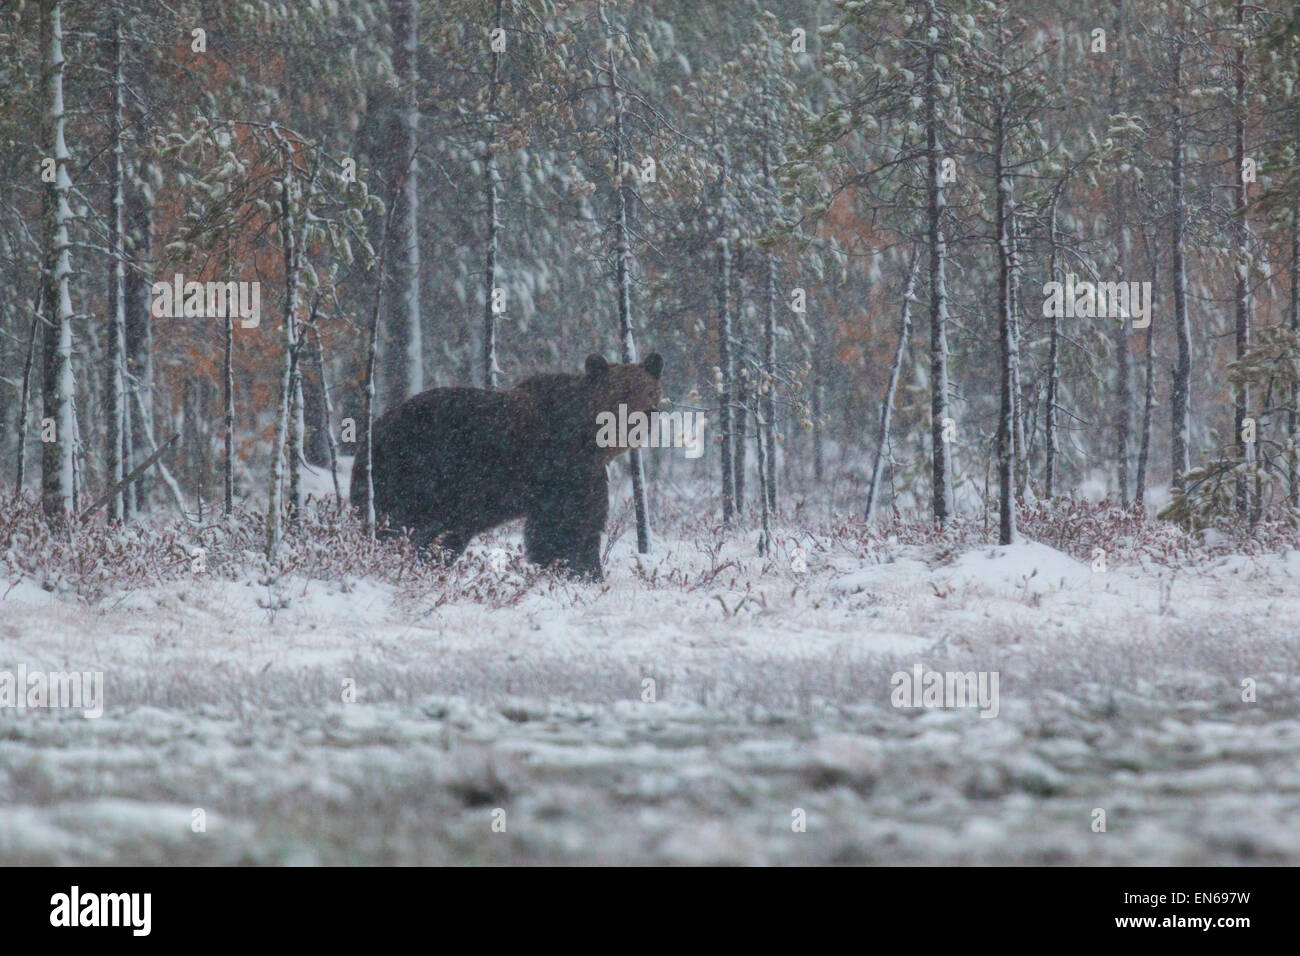 Brown bear, Ursus arctos walking in forest in snow storm with birches in yellow autumn colors, Kuhmo, Finland - Stock Image